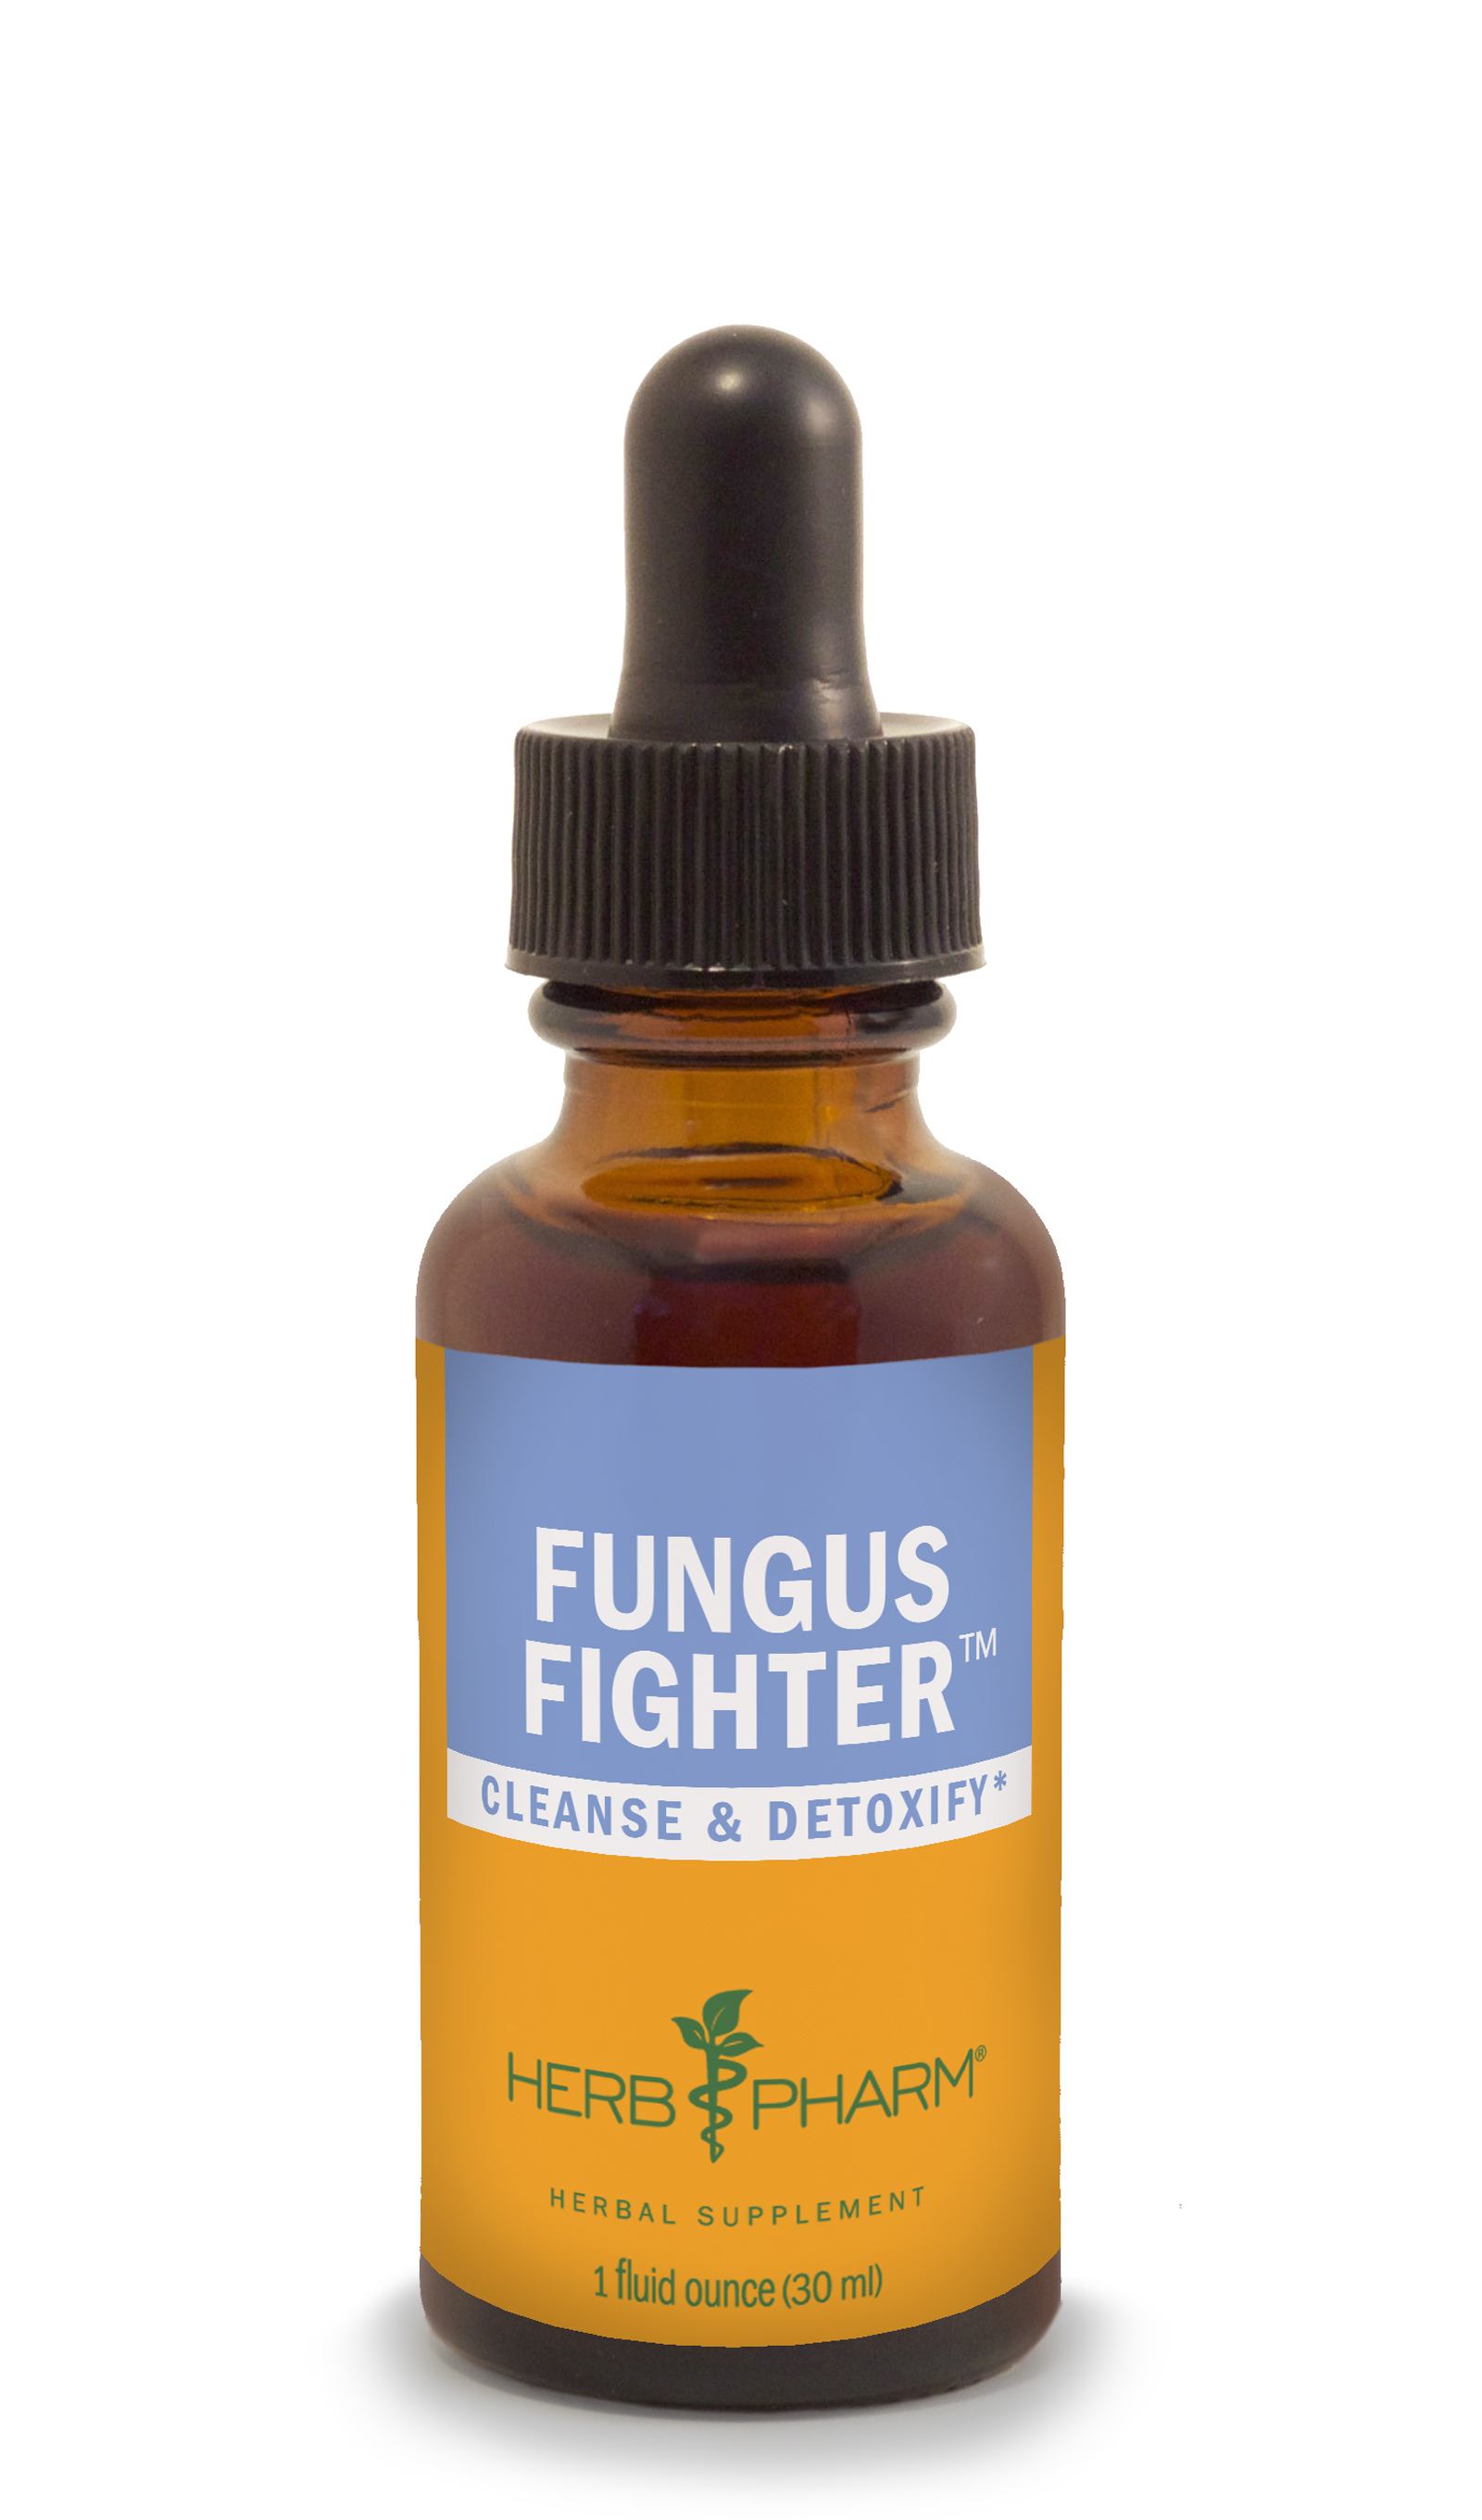 Fungus Fighter (Herb Pharm)